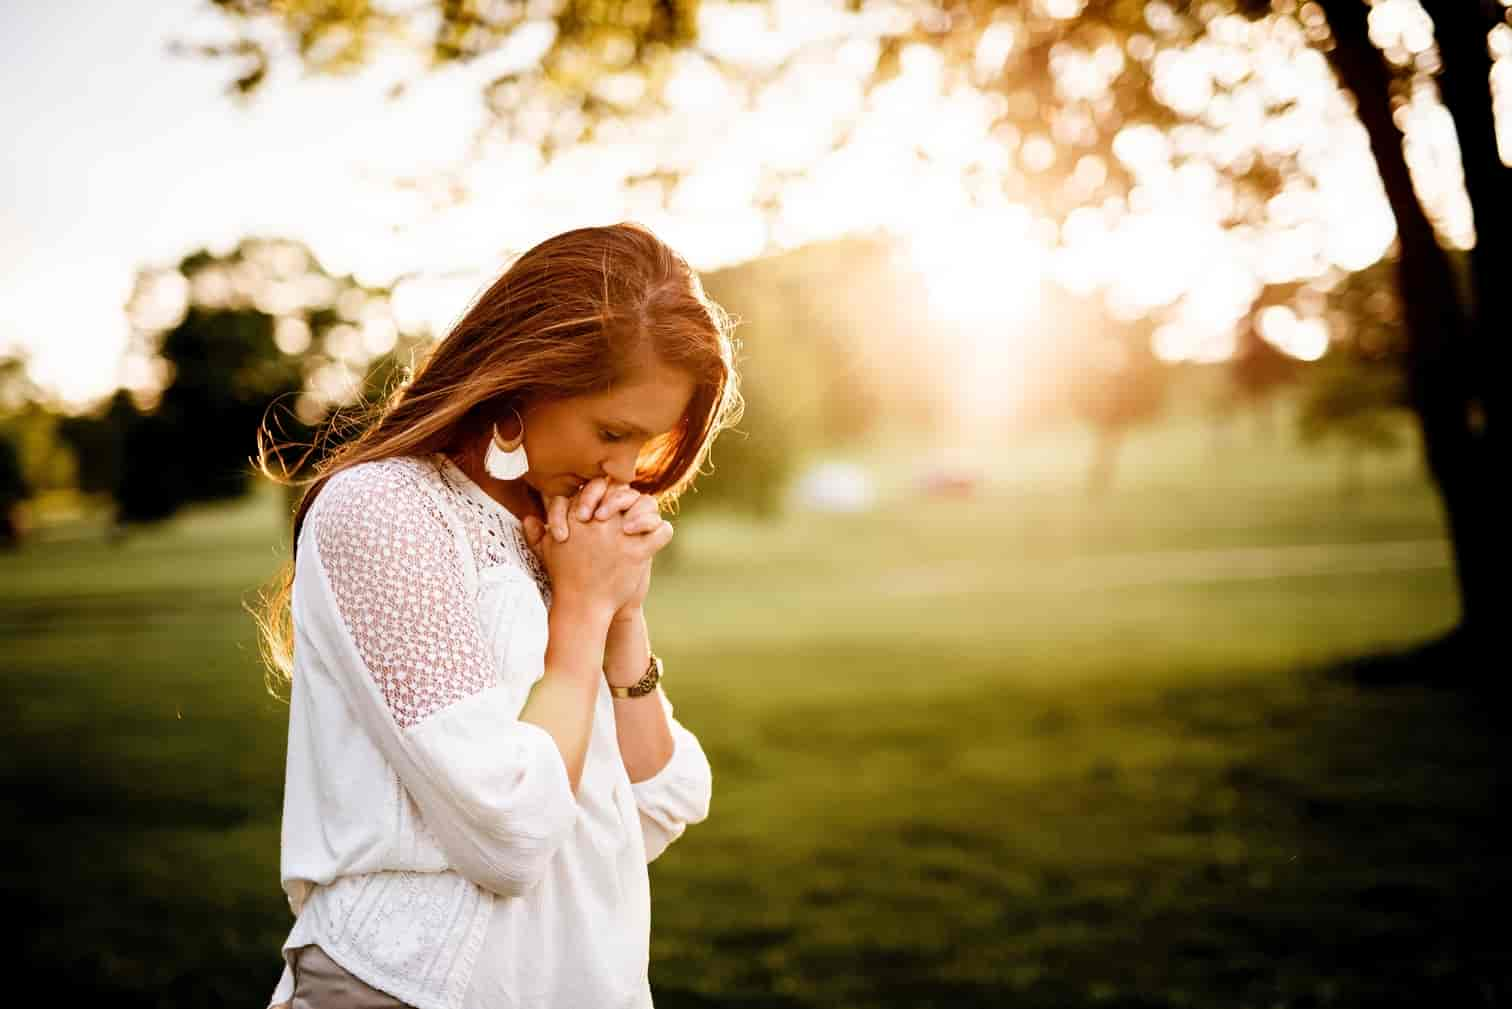 Woman standing up and praying.